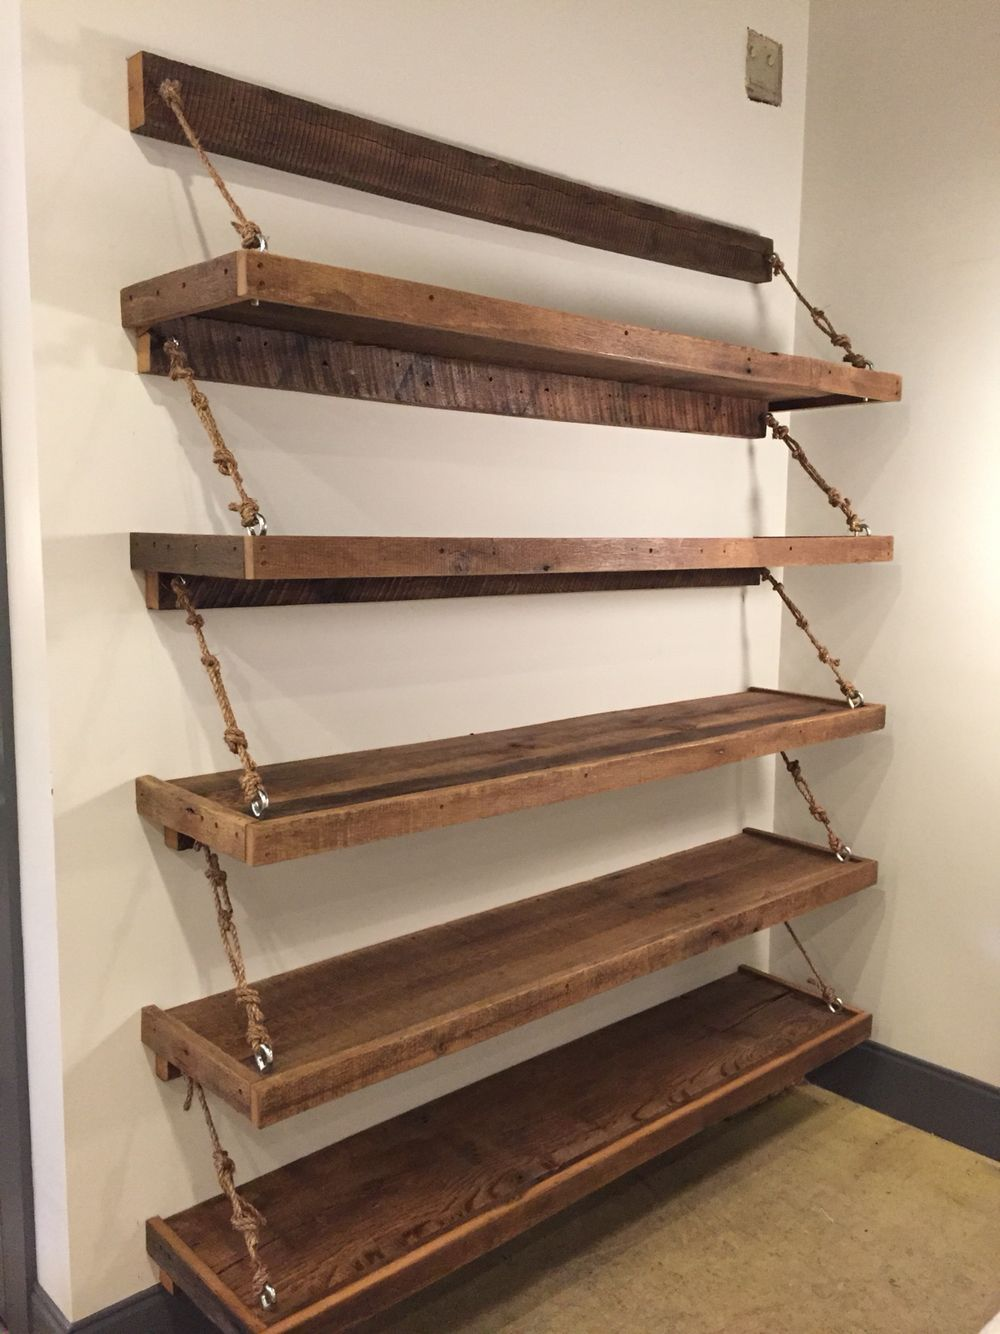 Reclaimed Wood Rope Shelves Ideas For Home In 2019